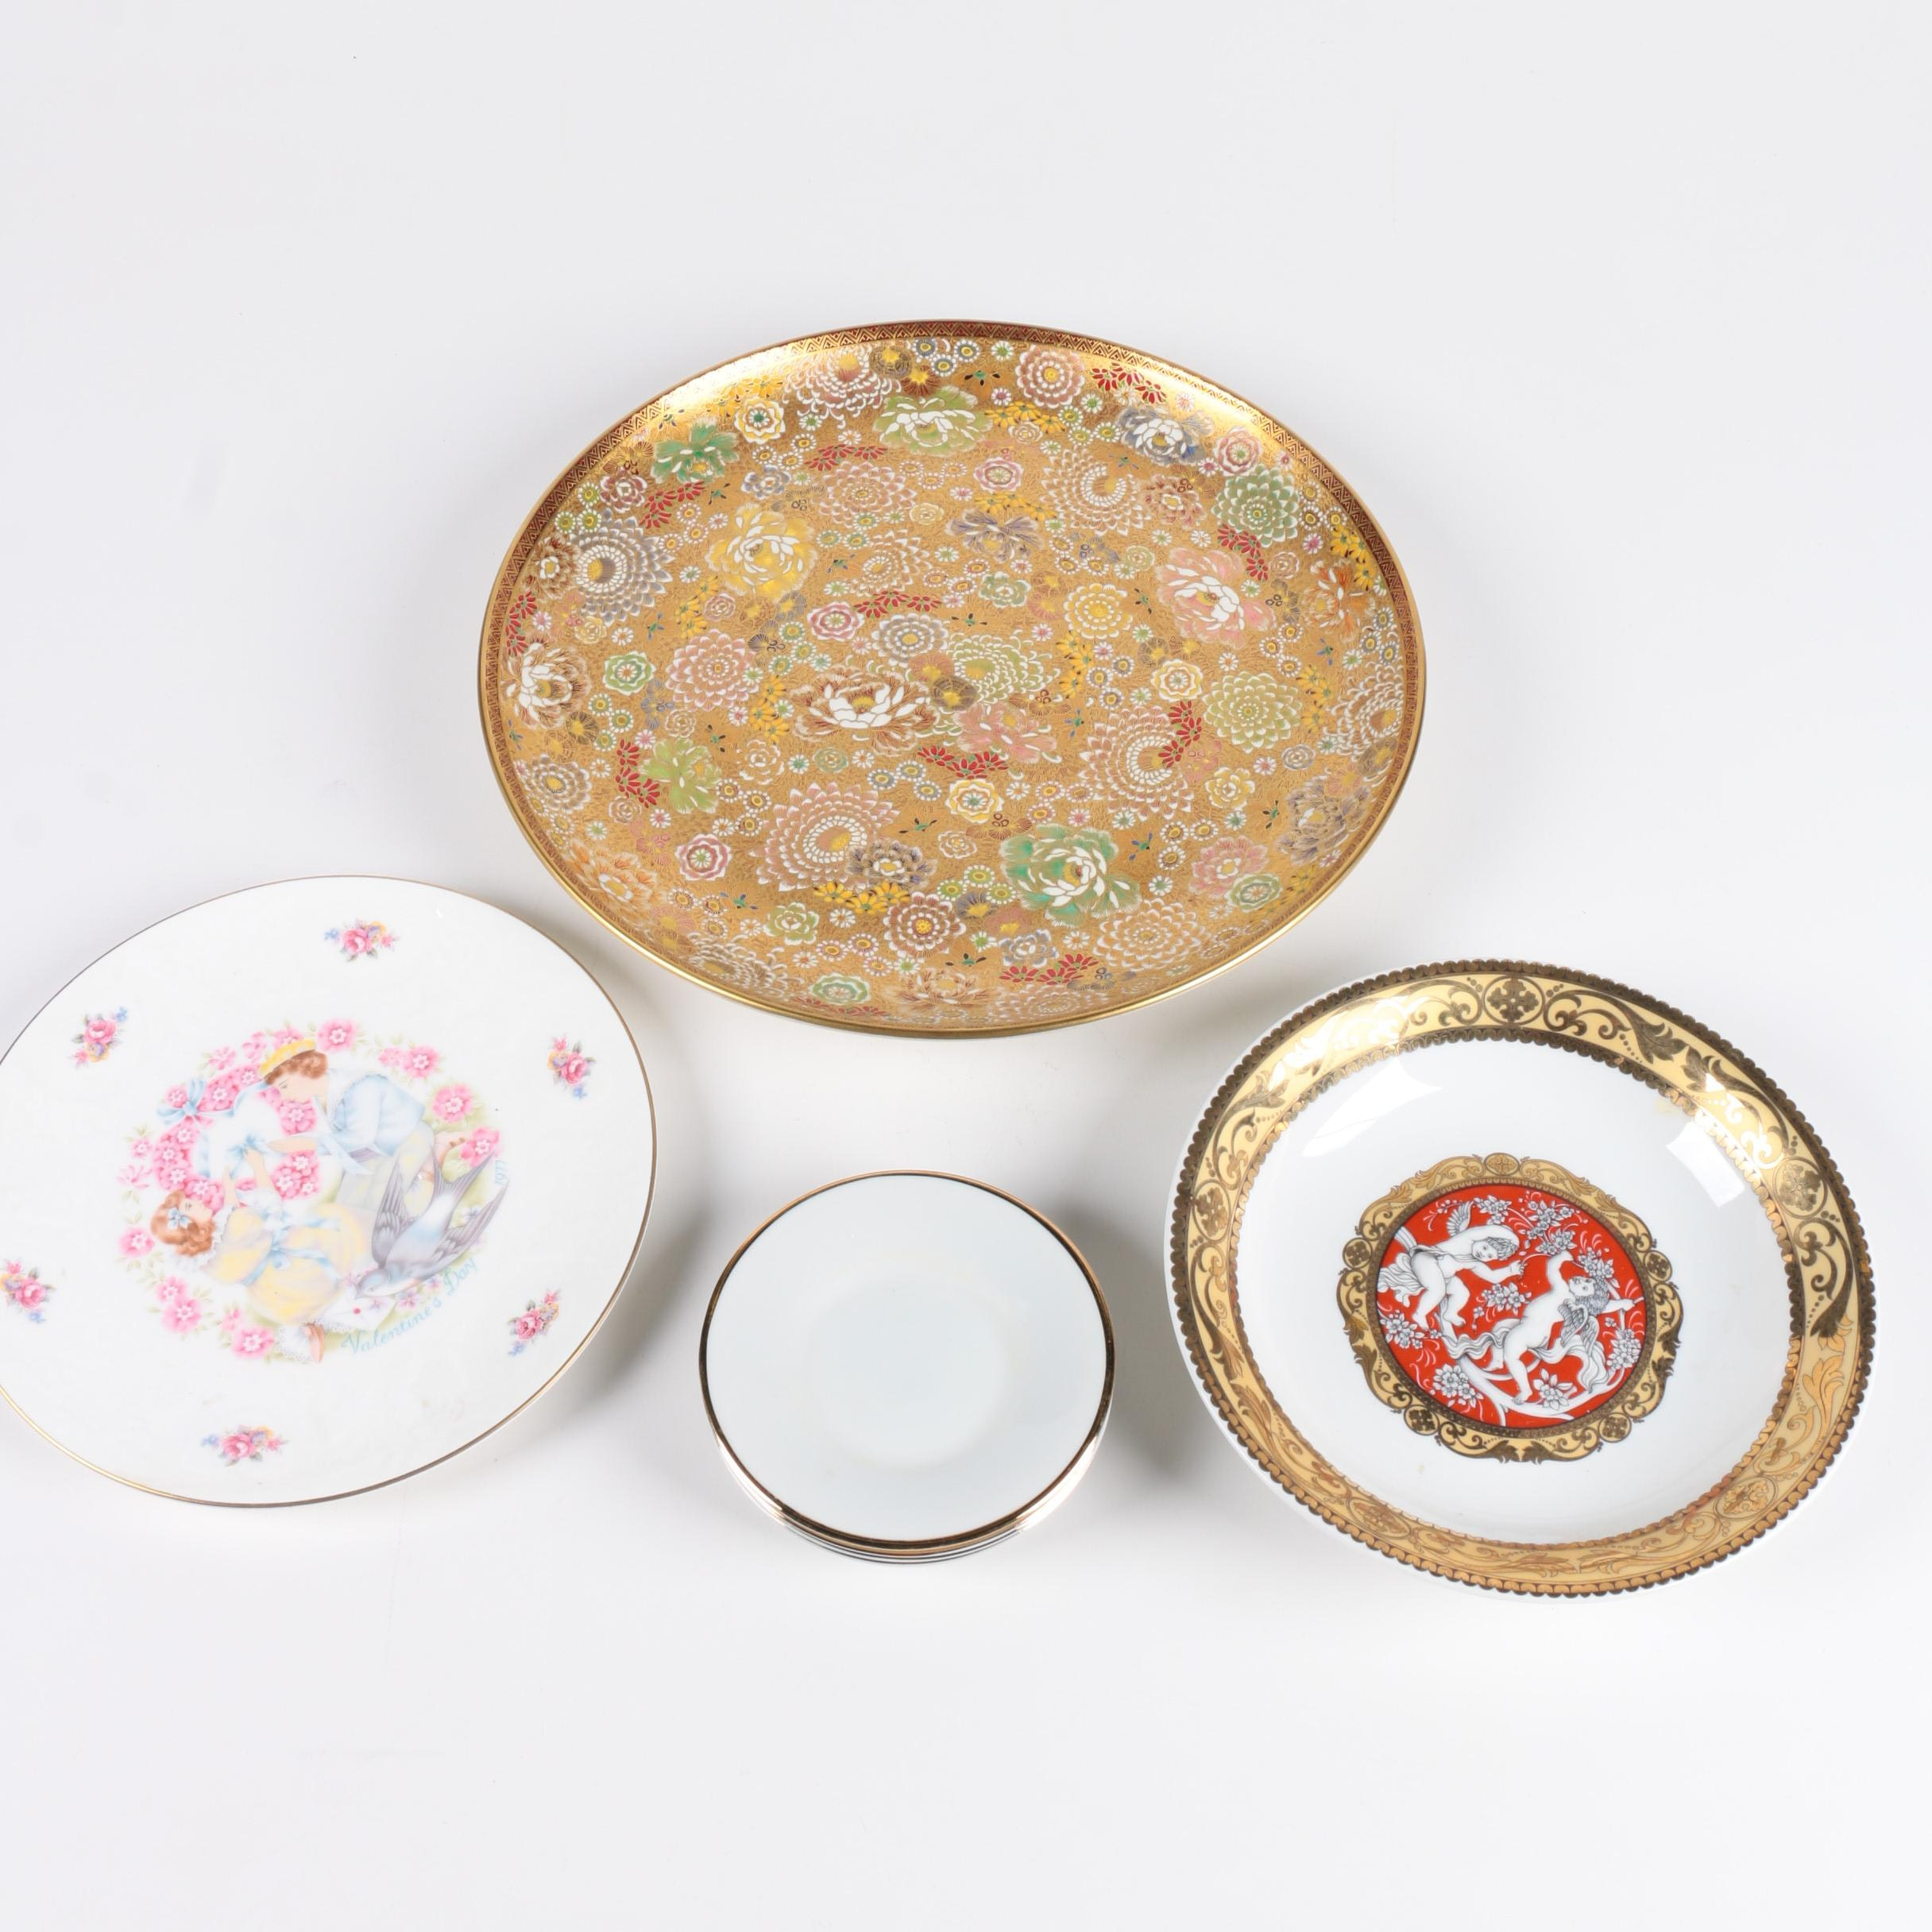 Assortment of Decorative Classical Style Plates